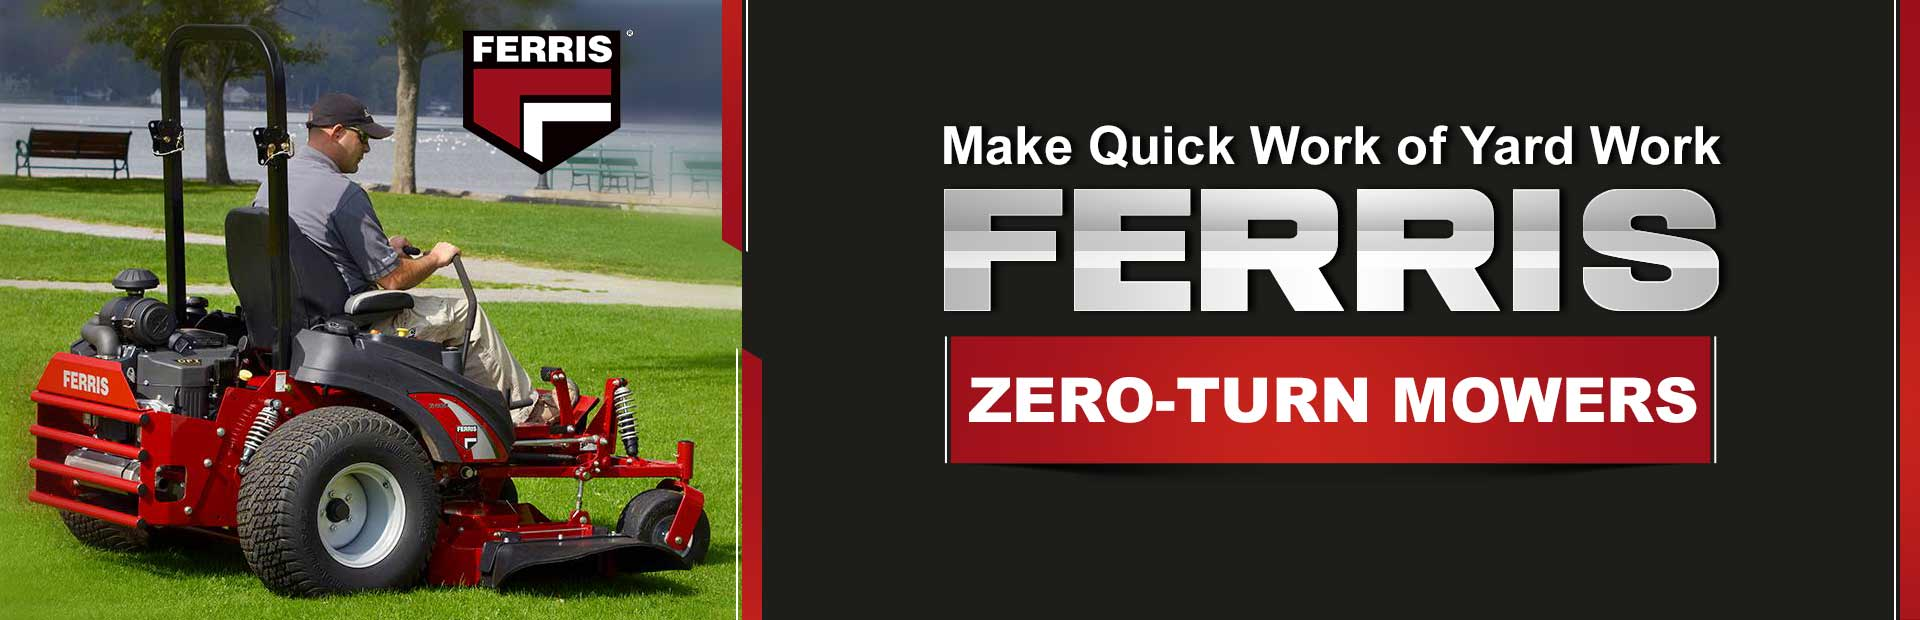 Ferris Zero-Turn Mowers: Click here to view the models.